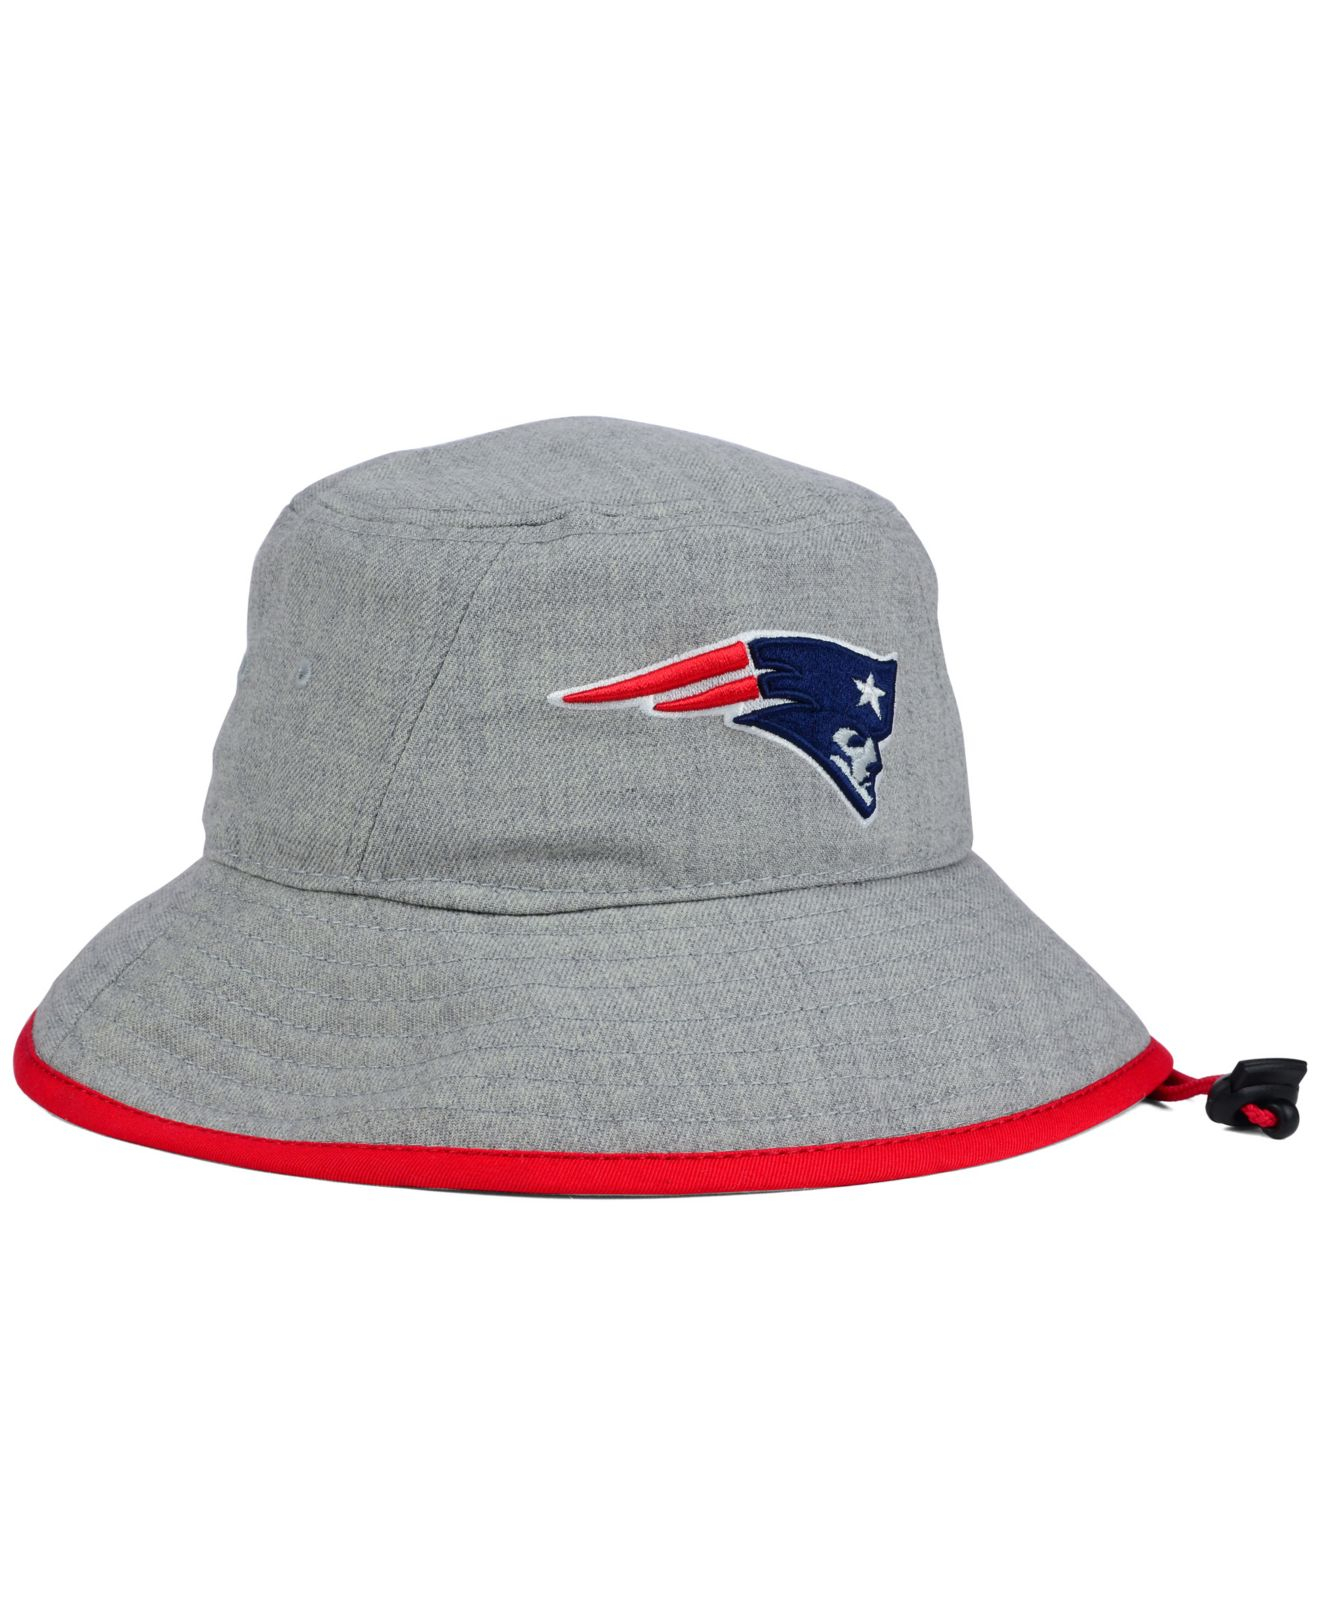 Lyst - KTZ New England Patriots Nfl Heather Gray Bucket Hat in Gray 37fbd433916